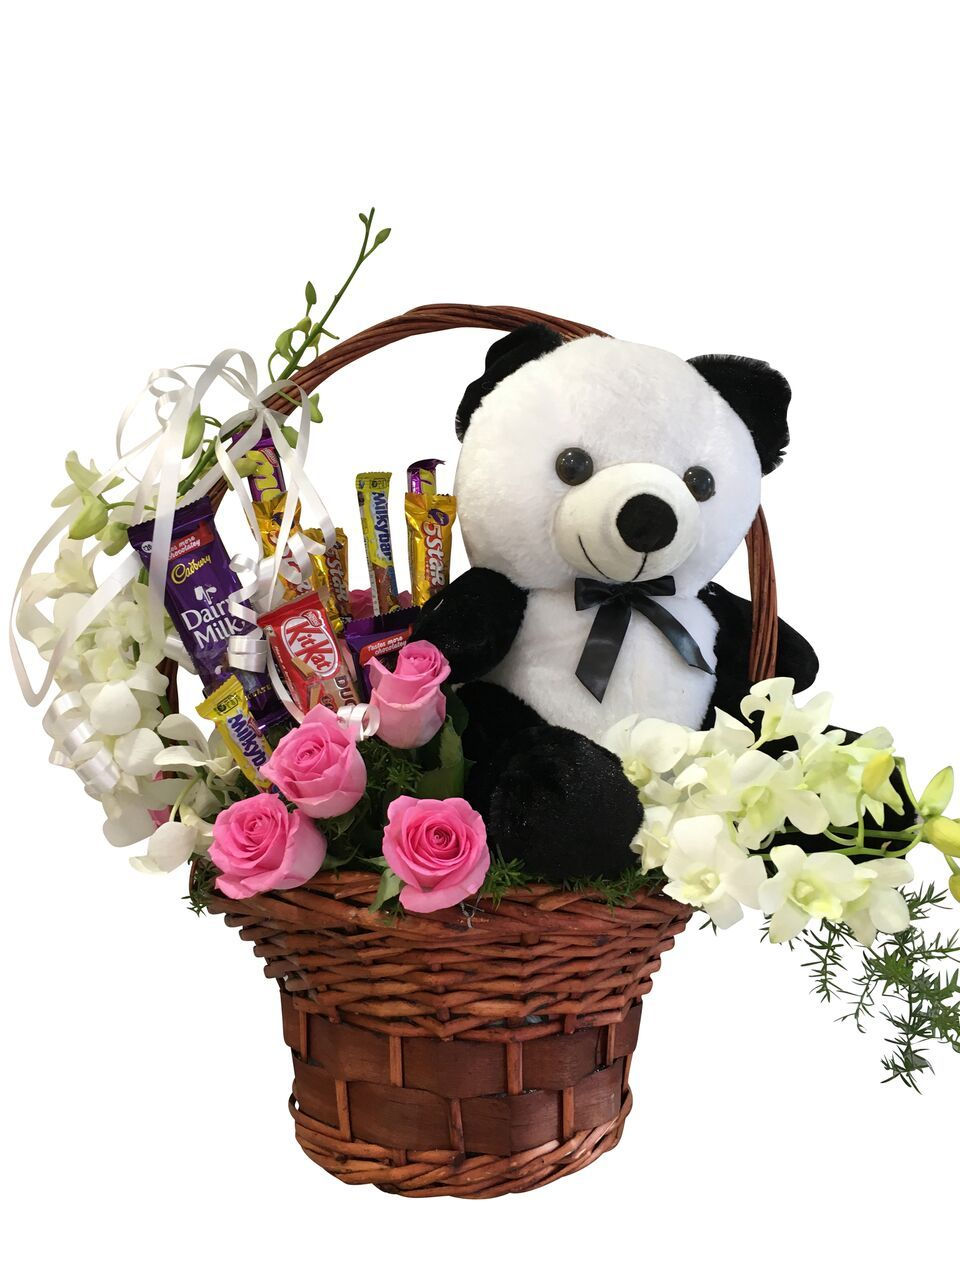 Send Anniversary Flowers and gifts to your loved one